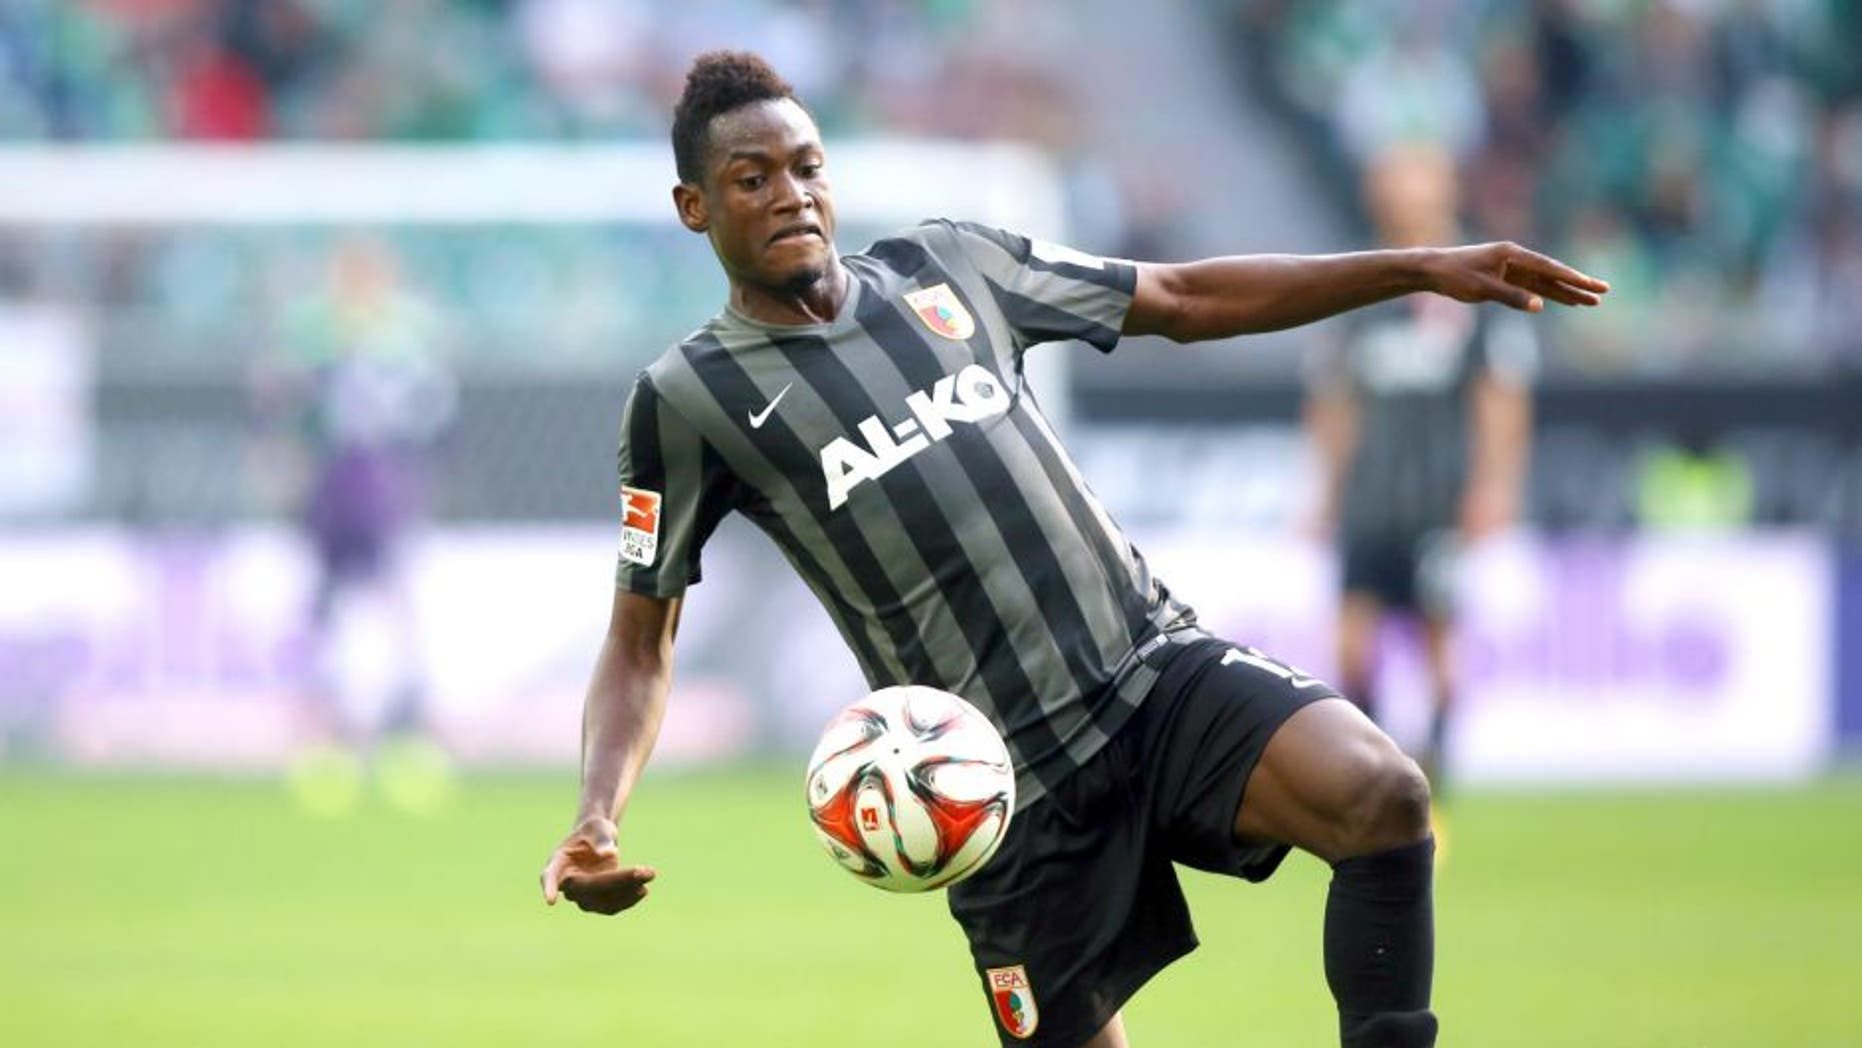 (GERMANY OUT) Abdul Rahman Baba (Photo by Contrast / Ralf Pollack/ullstein bild via Getty Images)